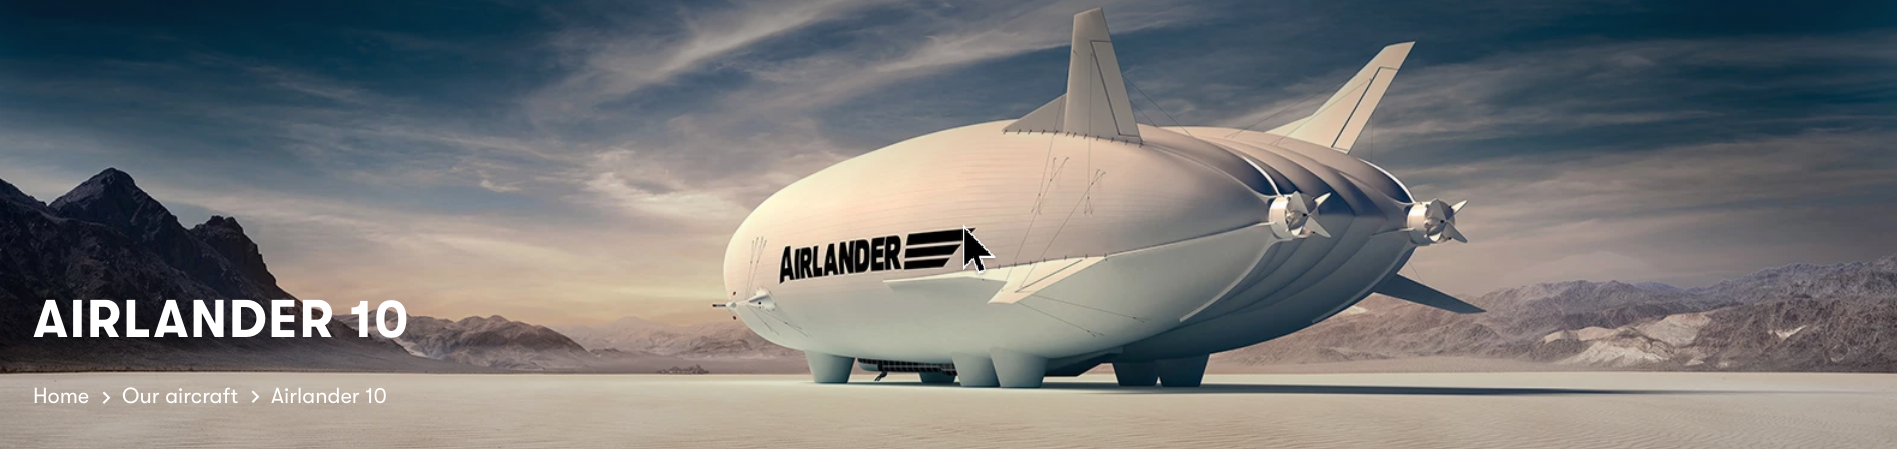 Blimps May Be The Key To Low-Carbon Short-Range Air Travel